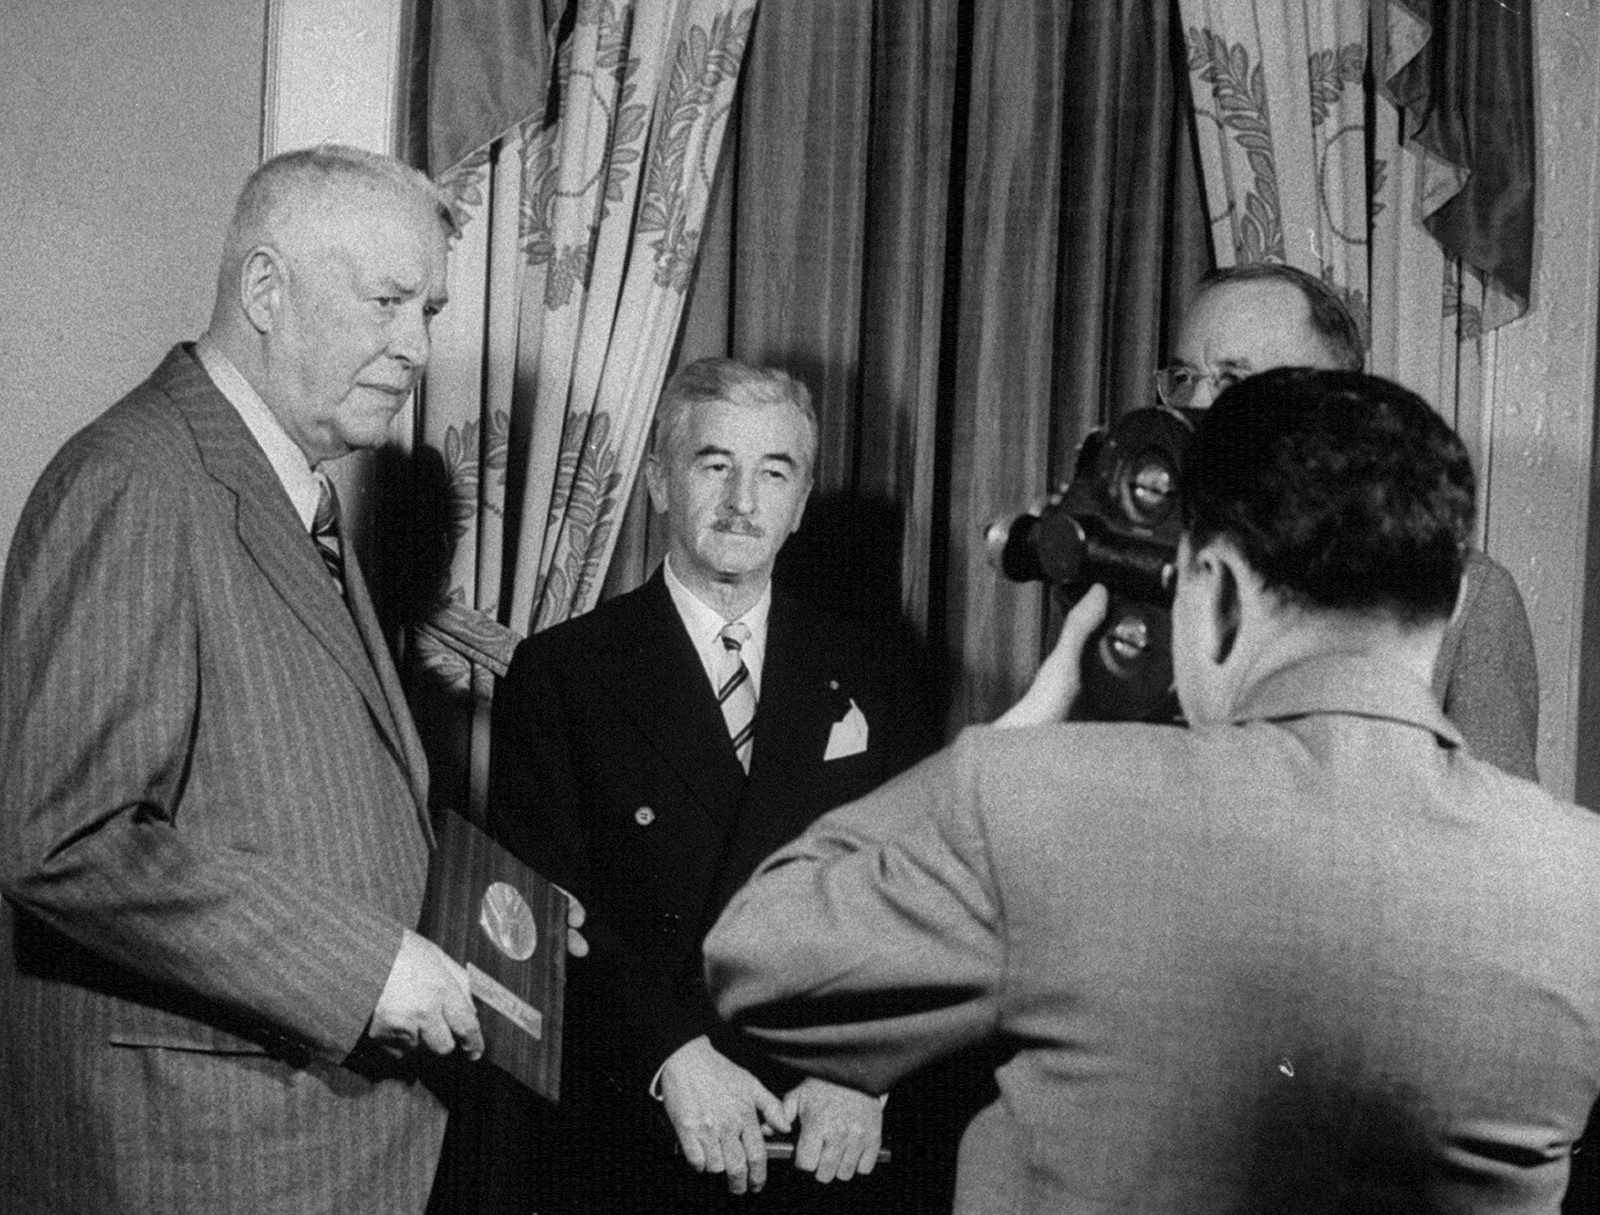 Wallace Stevens and William Faulkner receiving National Book Awards, 1955